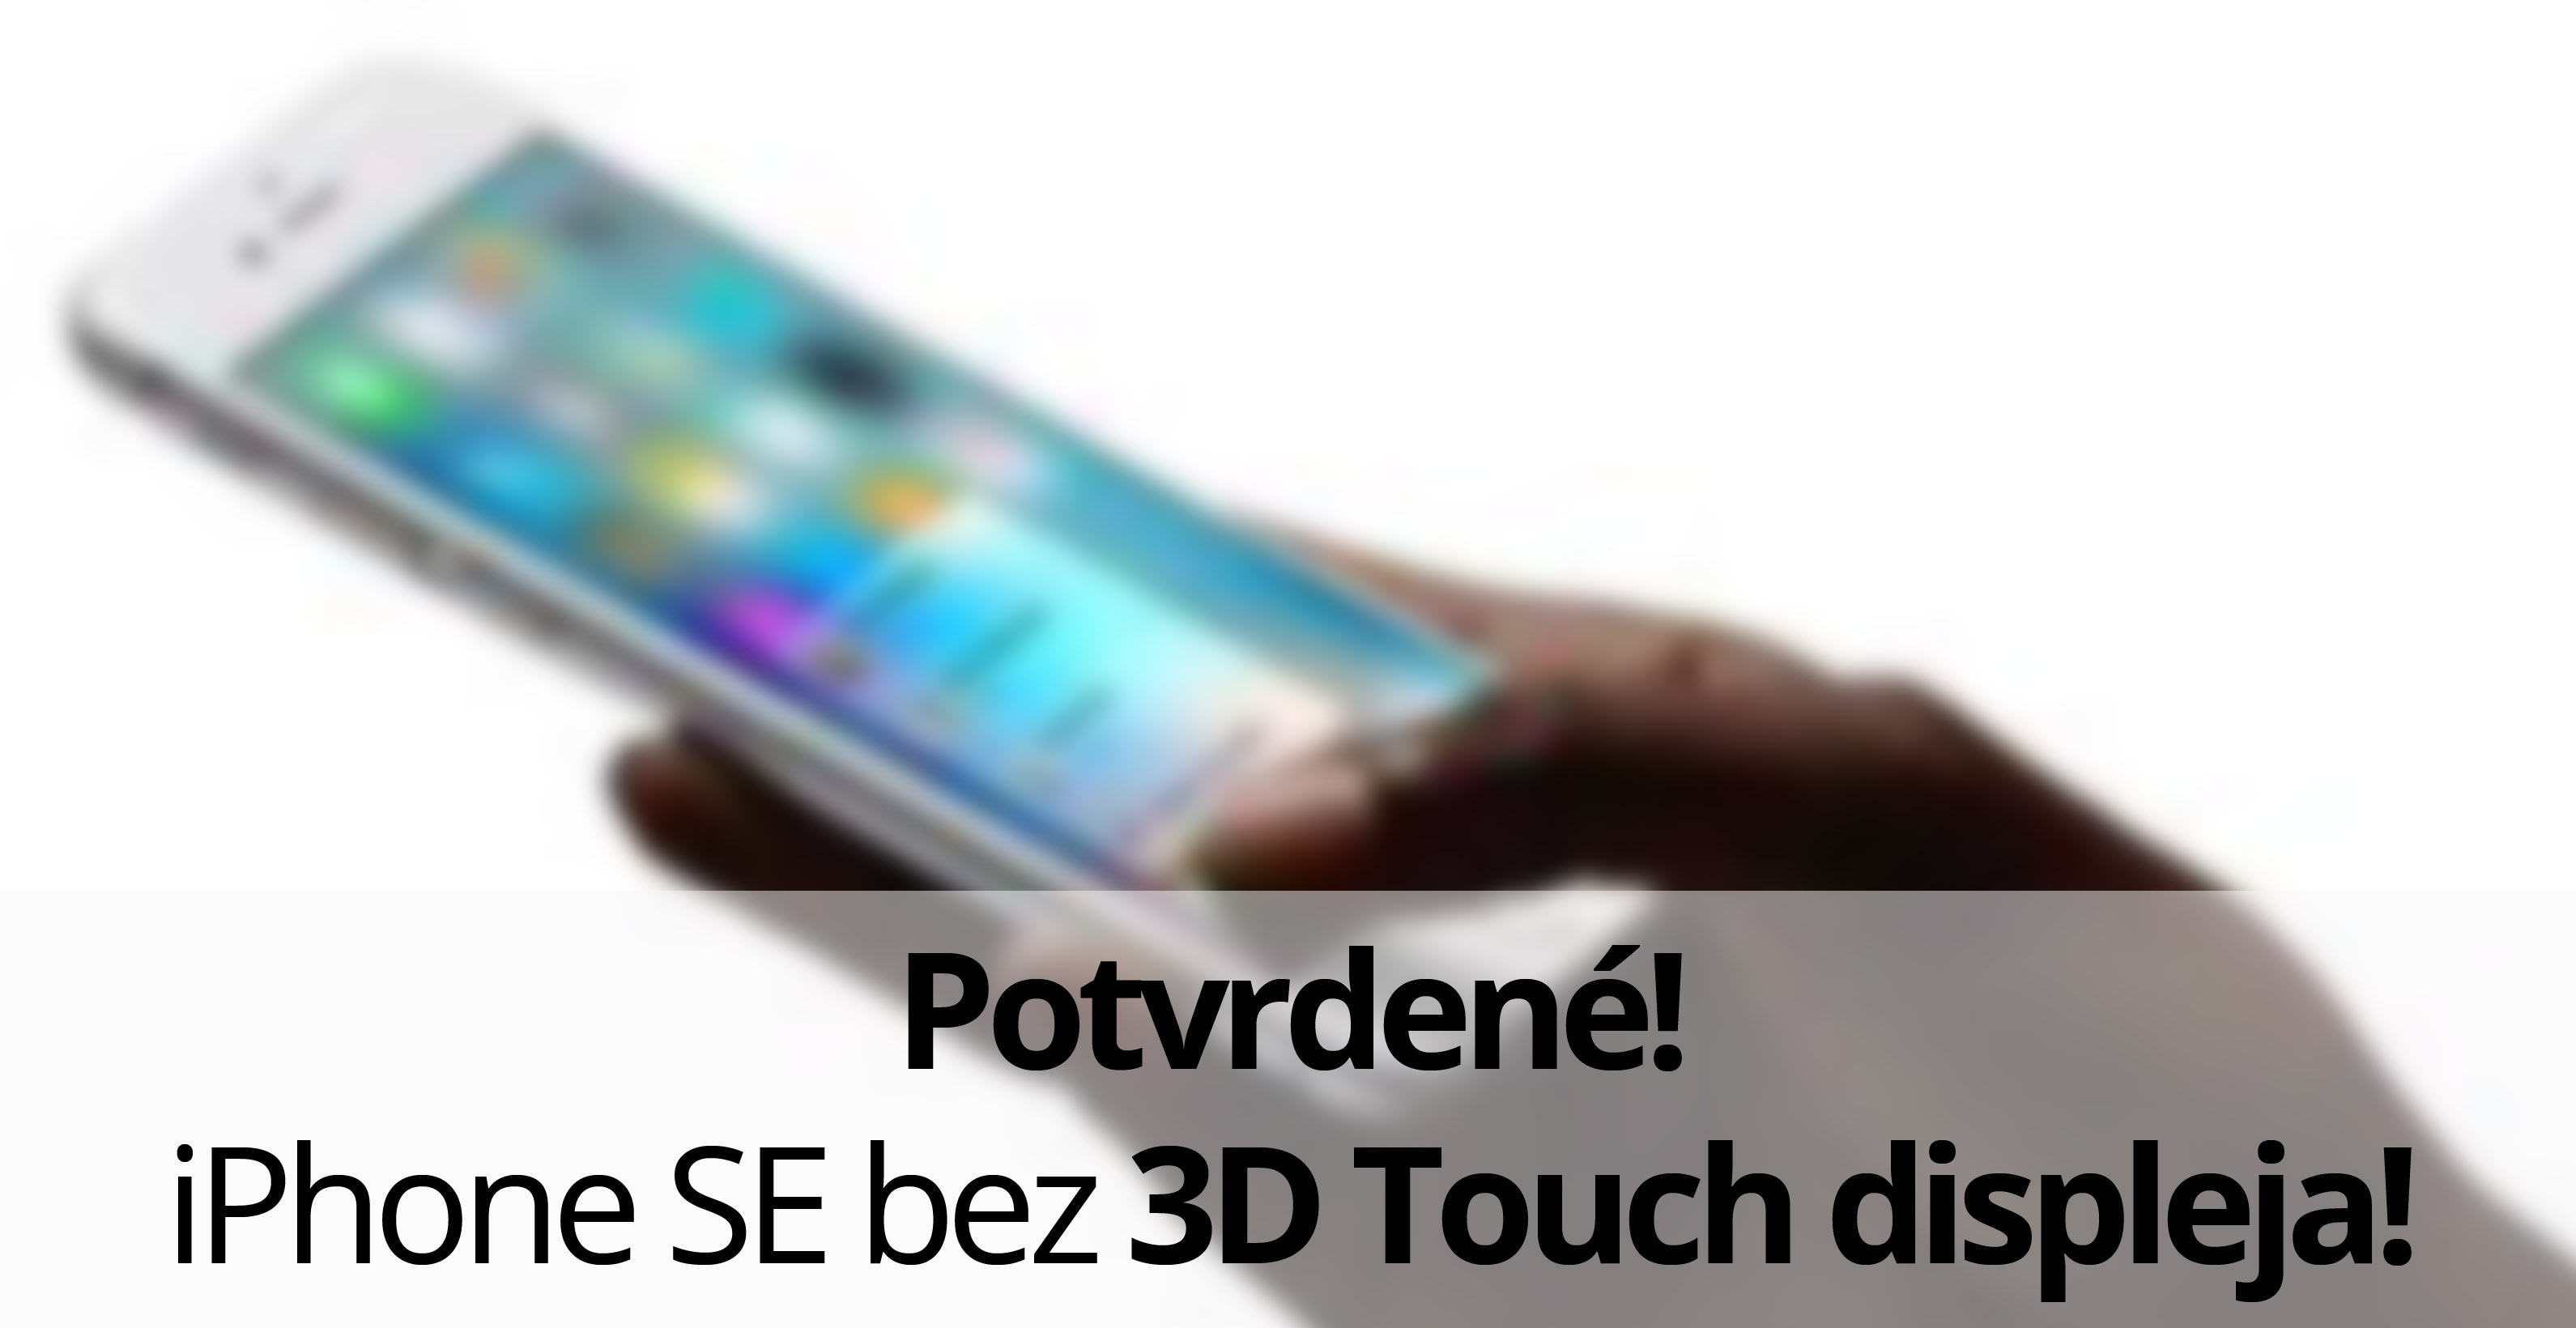 Potvrdené! iPhone SE bez 3D Touch displeja!